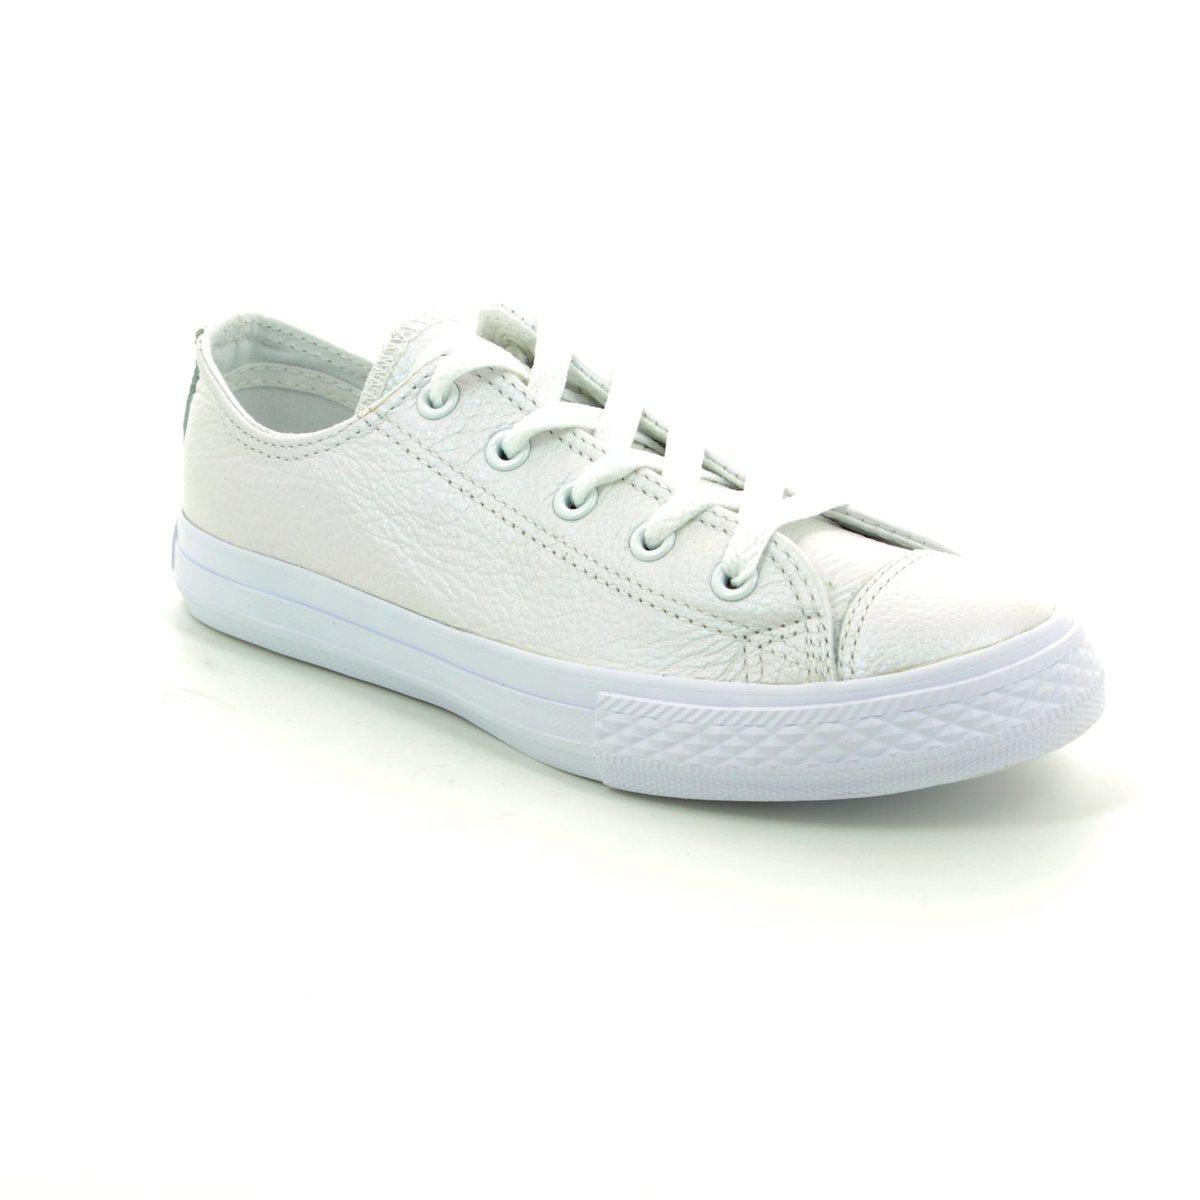 7dc10a34c88f Converse Trainers - White - 358009C Chuck Taylor All Star Ox Junior Leather